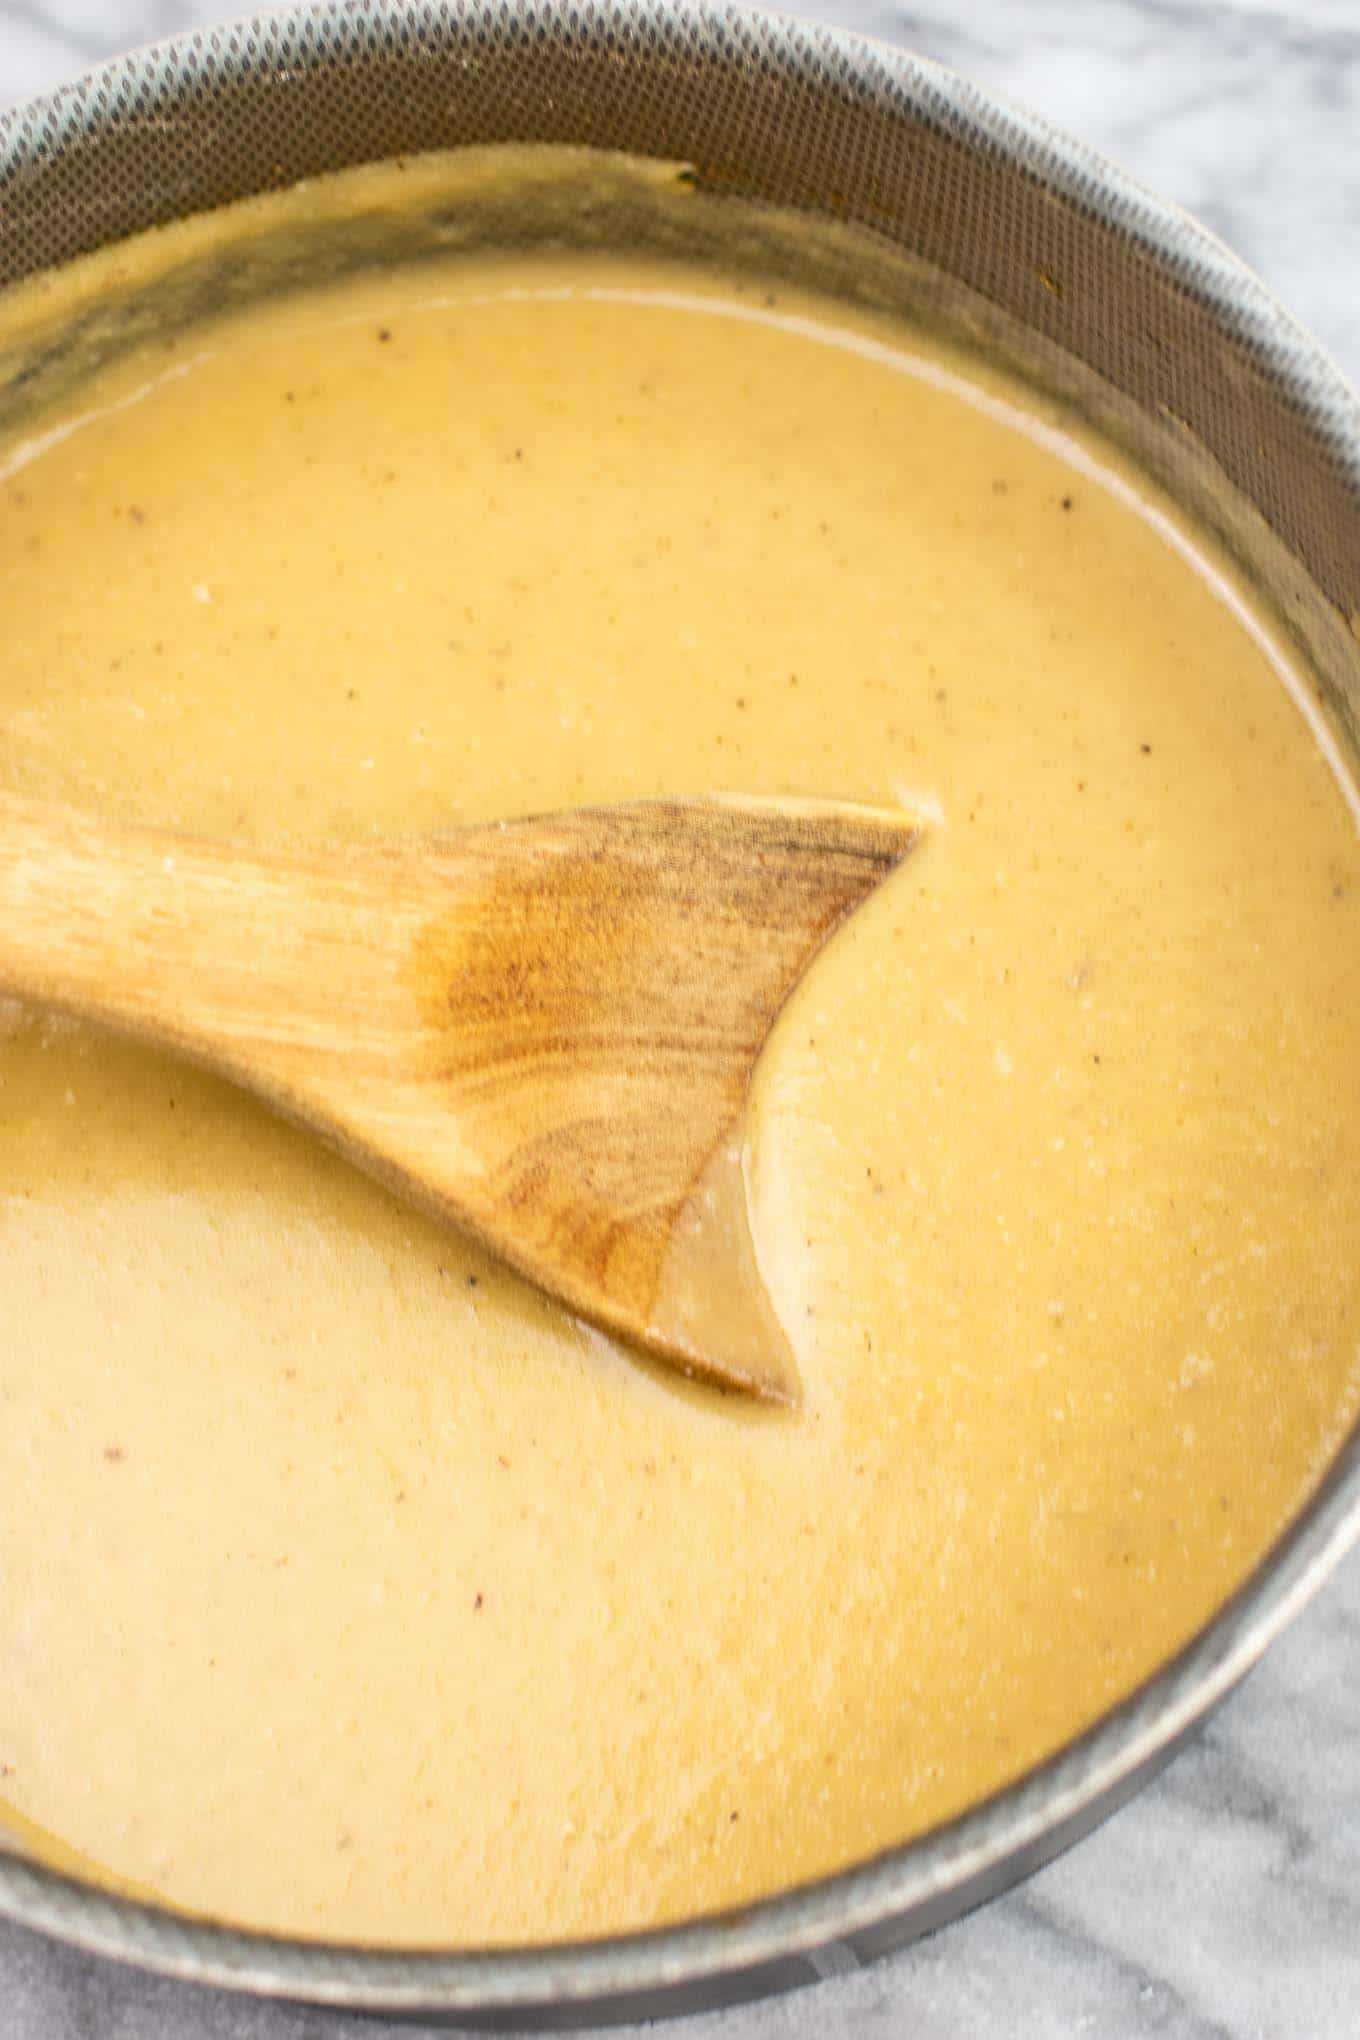 How to make vegetarian gravy - this is the BEST gravy I have ever had, with or without meat! Seriously incredible and everyone will be wanting some at Thanksgiving! #gravy #vegetarian #mushroomgravy #vegan #vegetarianthanksgiving